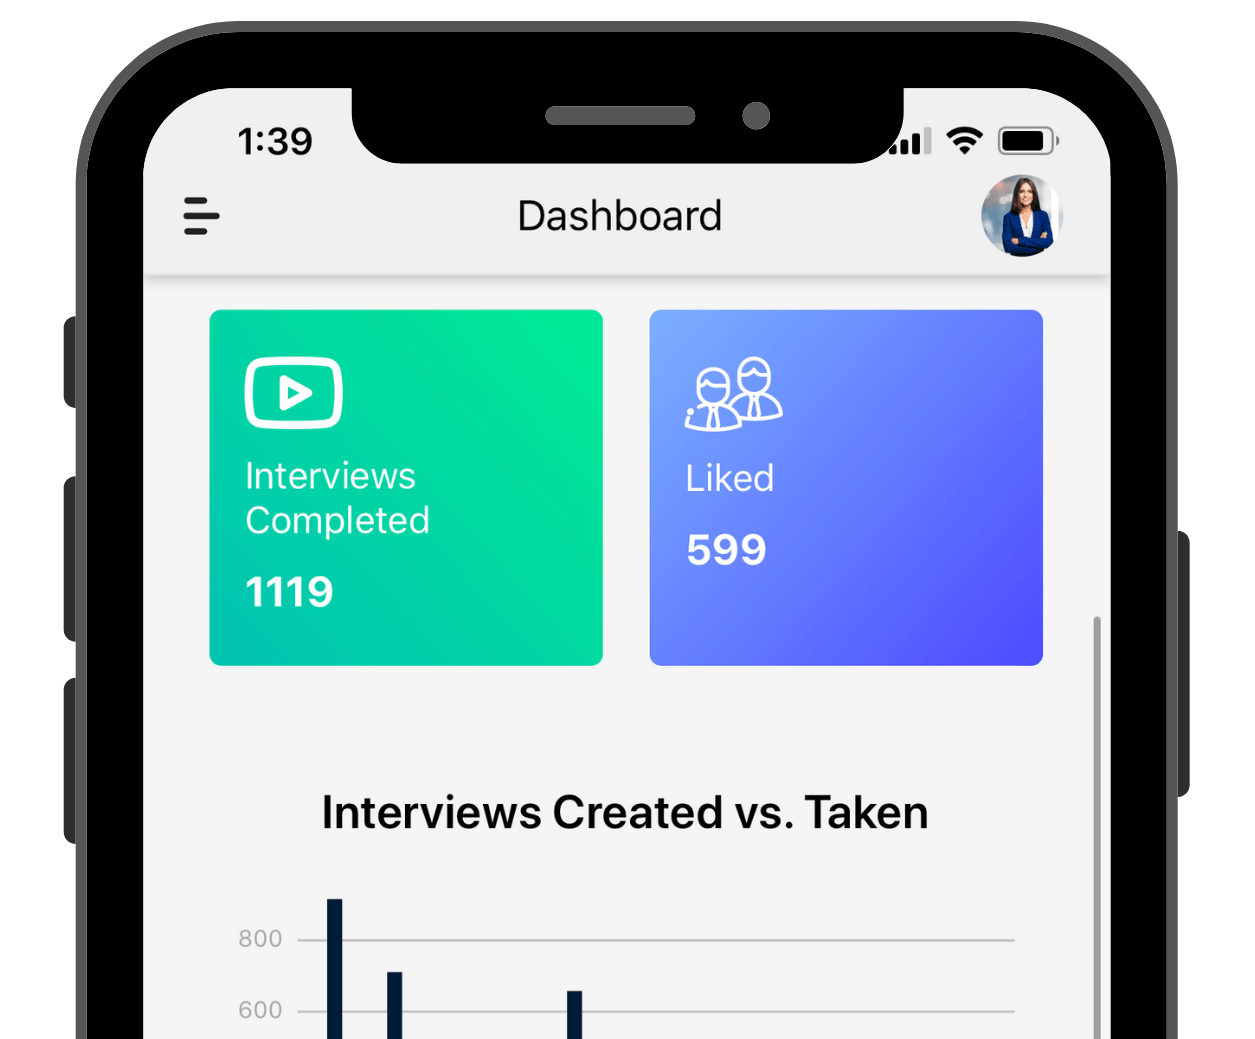 App features displaying Interview Information